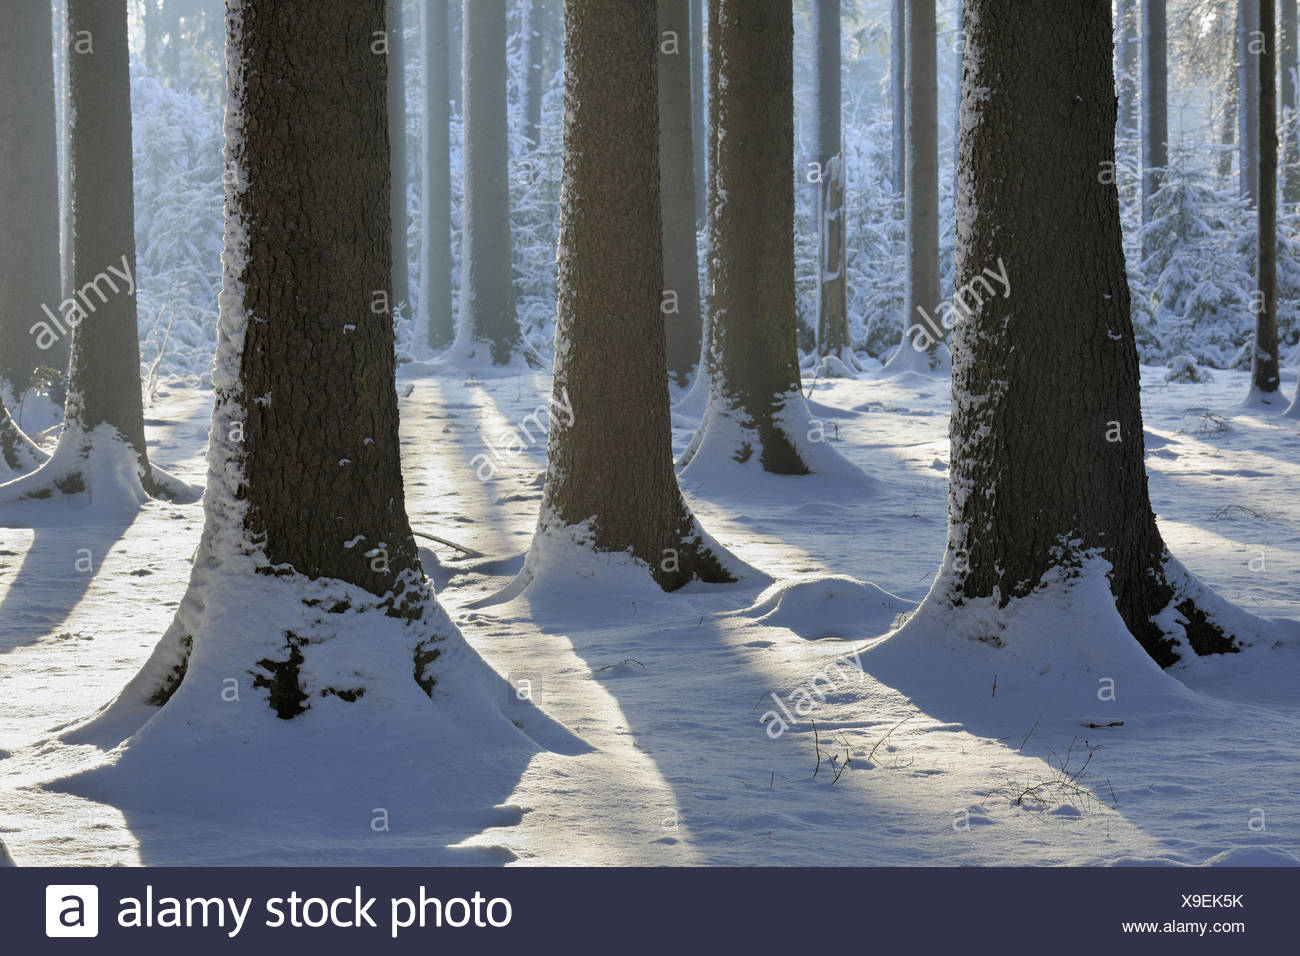 Winter wood, conifers, detail, trunks, - Stock Image